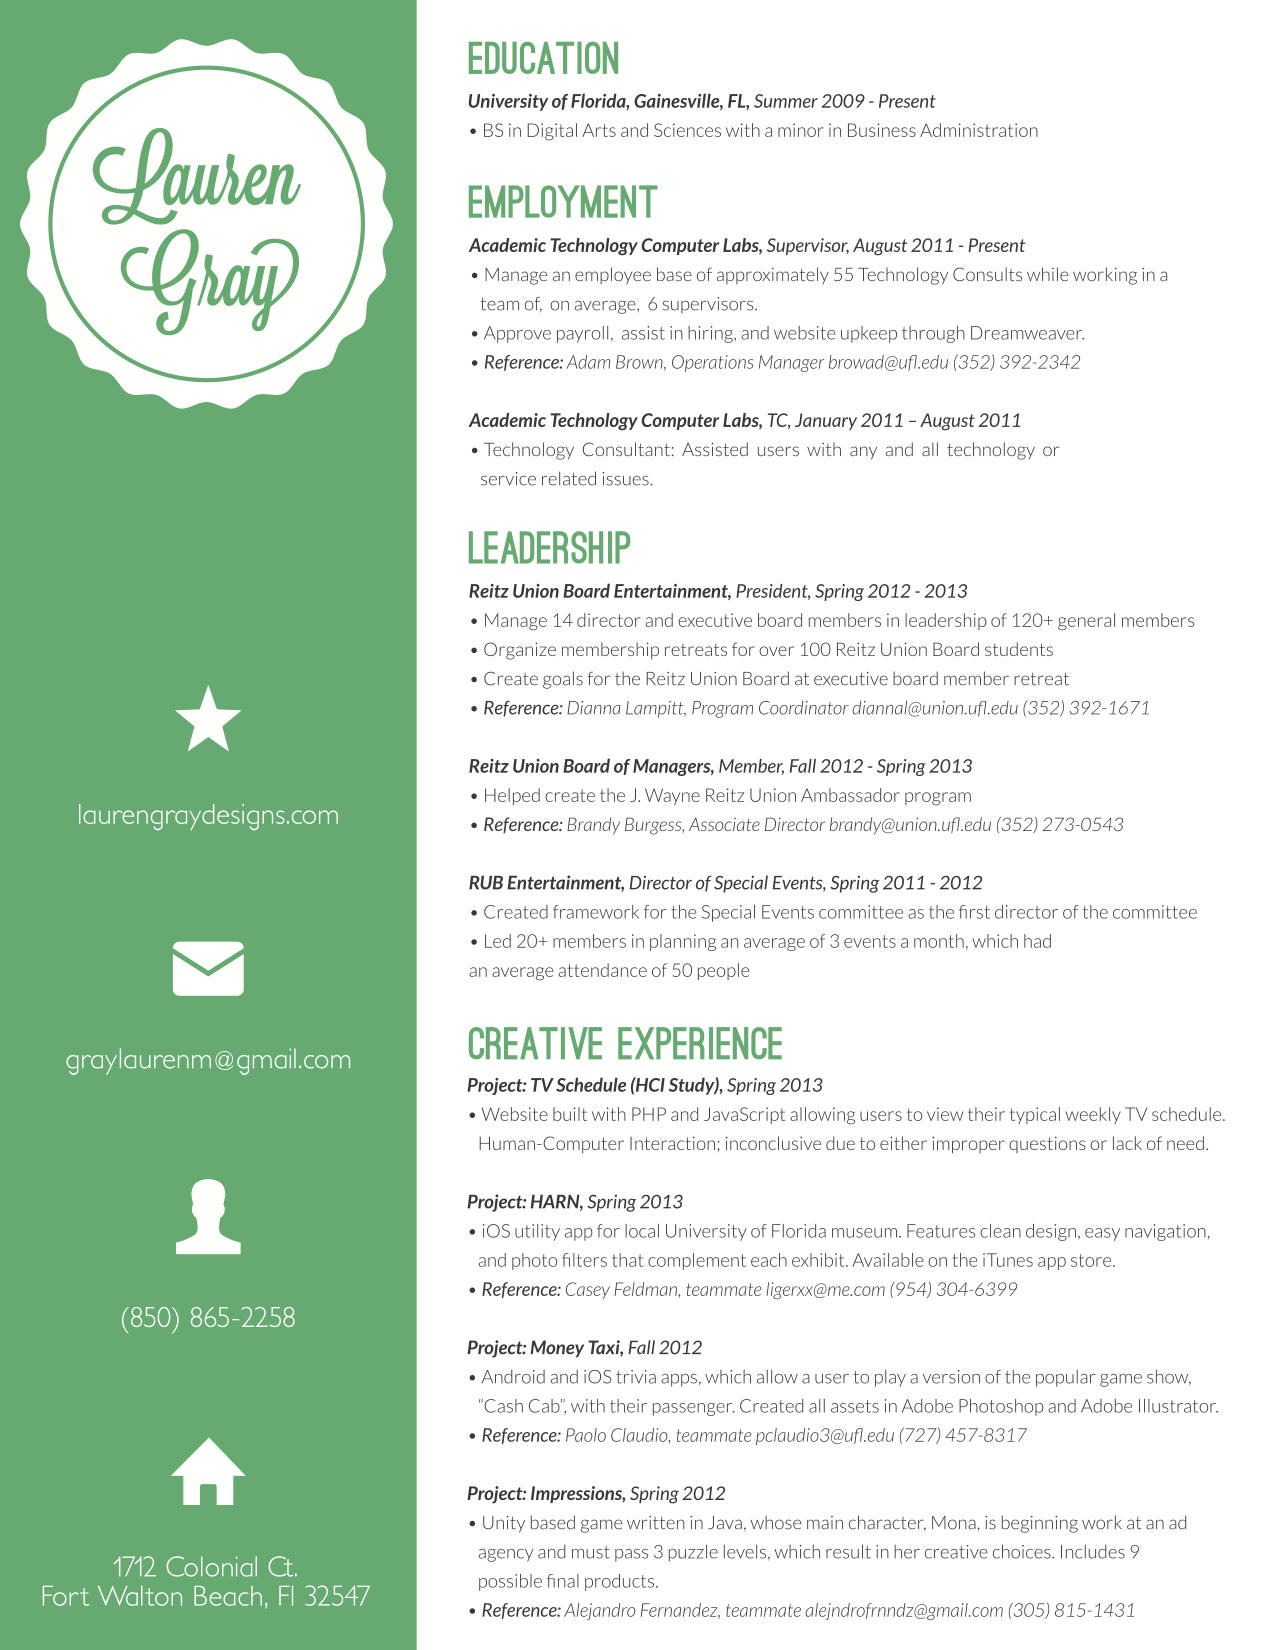 lauren gray resume design